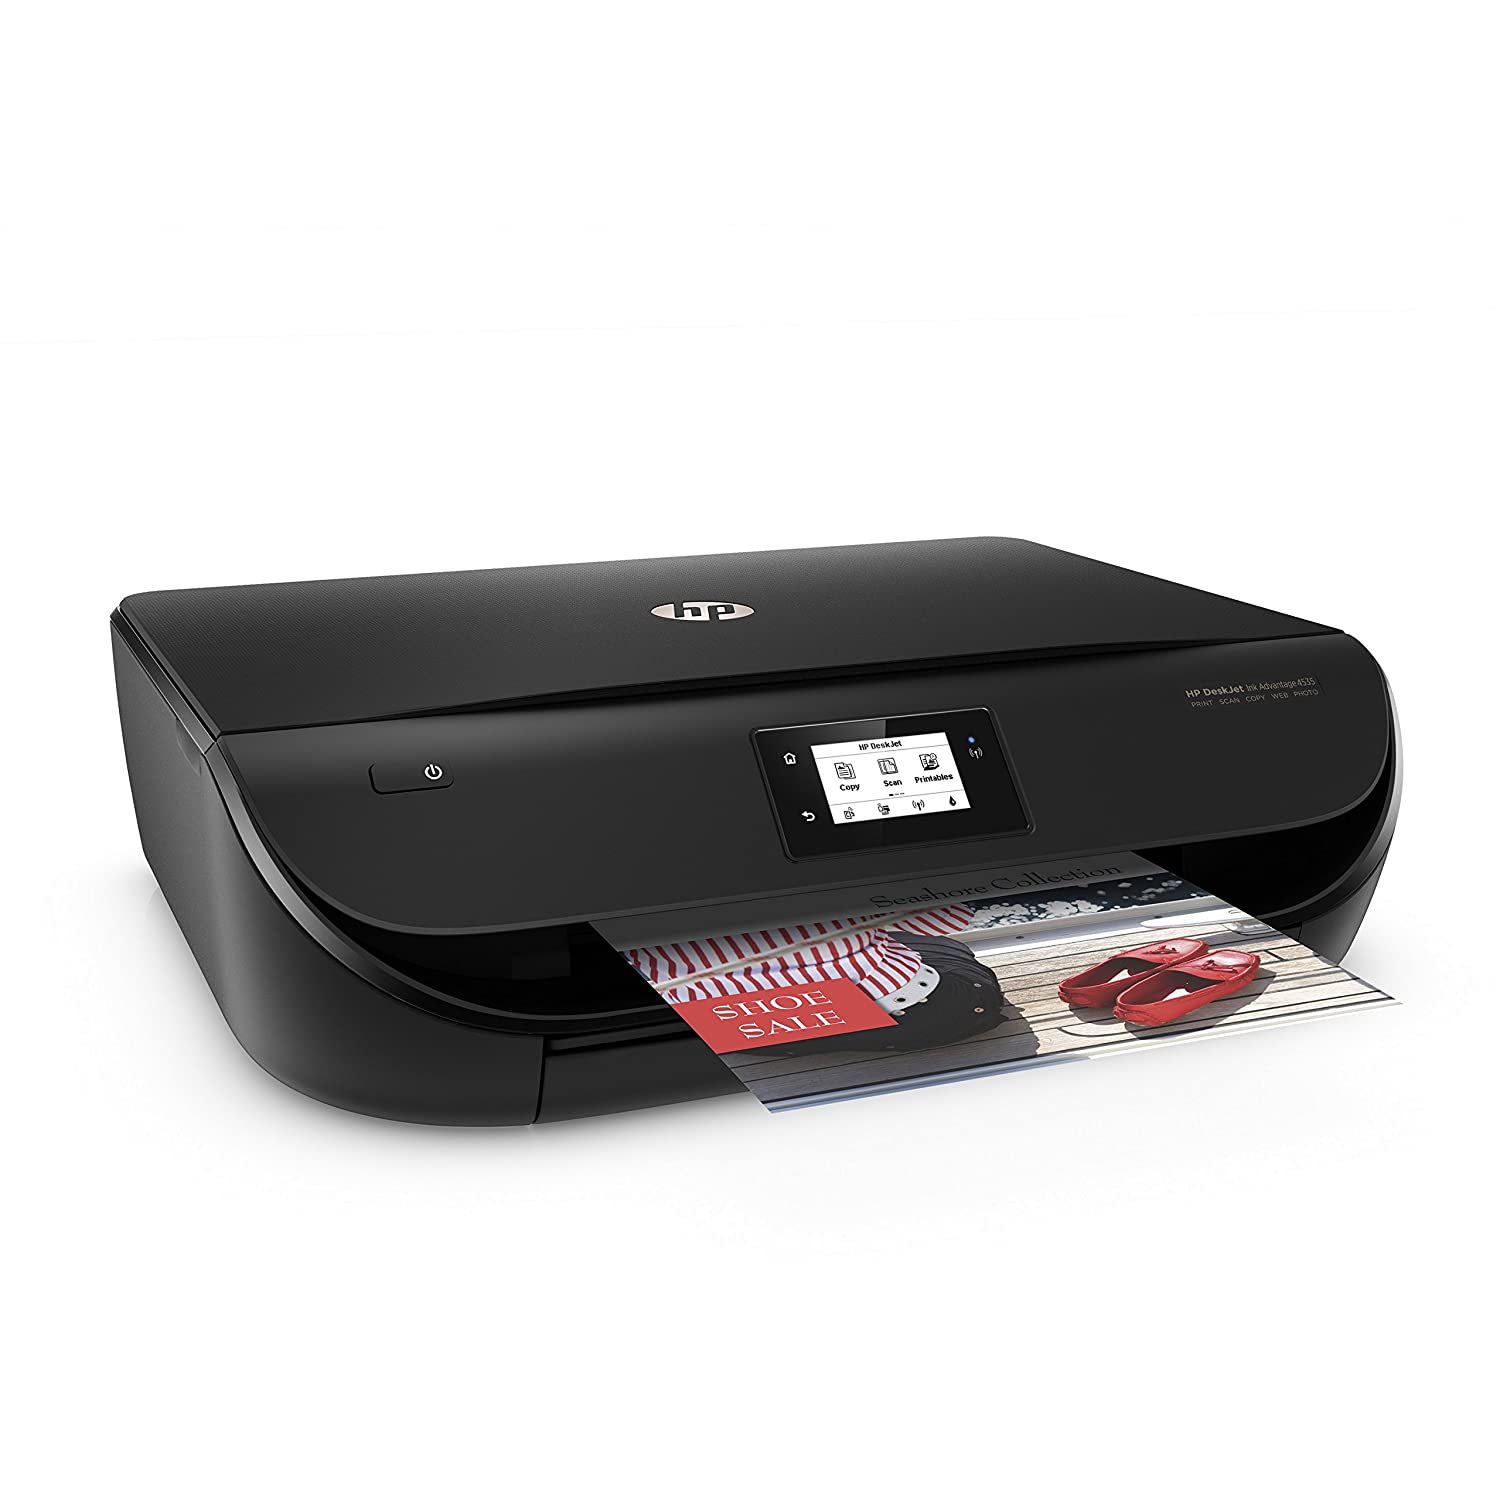 Color printing cost per page in india - Amazon In Buy Hp Deskjet 4535 All In One Wireless Color Ink Printer Black Online At Low Prices In India Hp Reviews Ratings